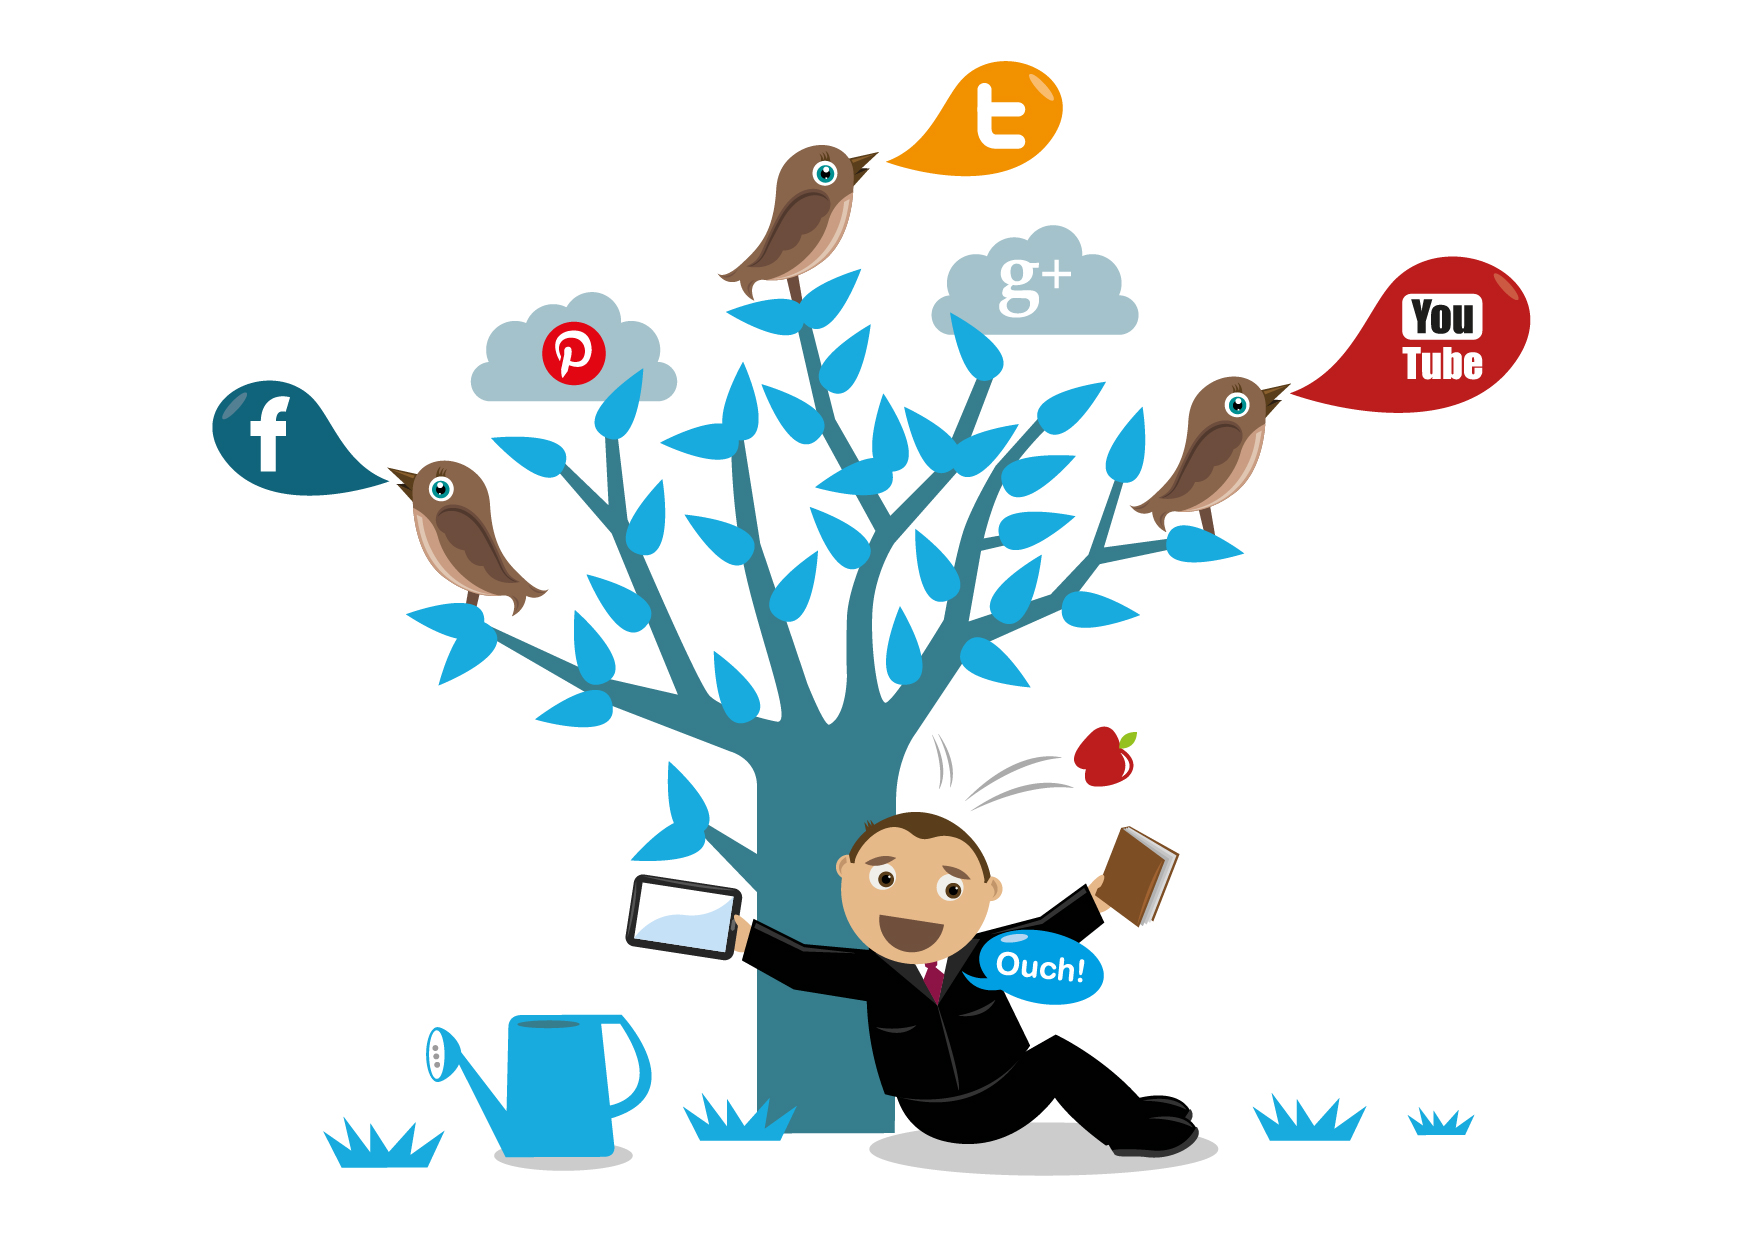 Social Media Mobile App Development How to Market iOS & Android apps?